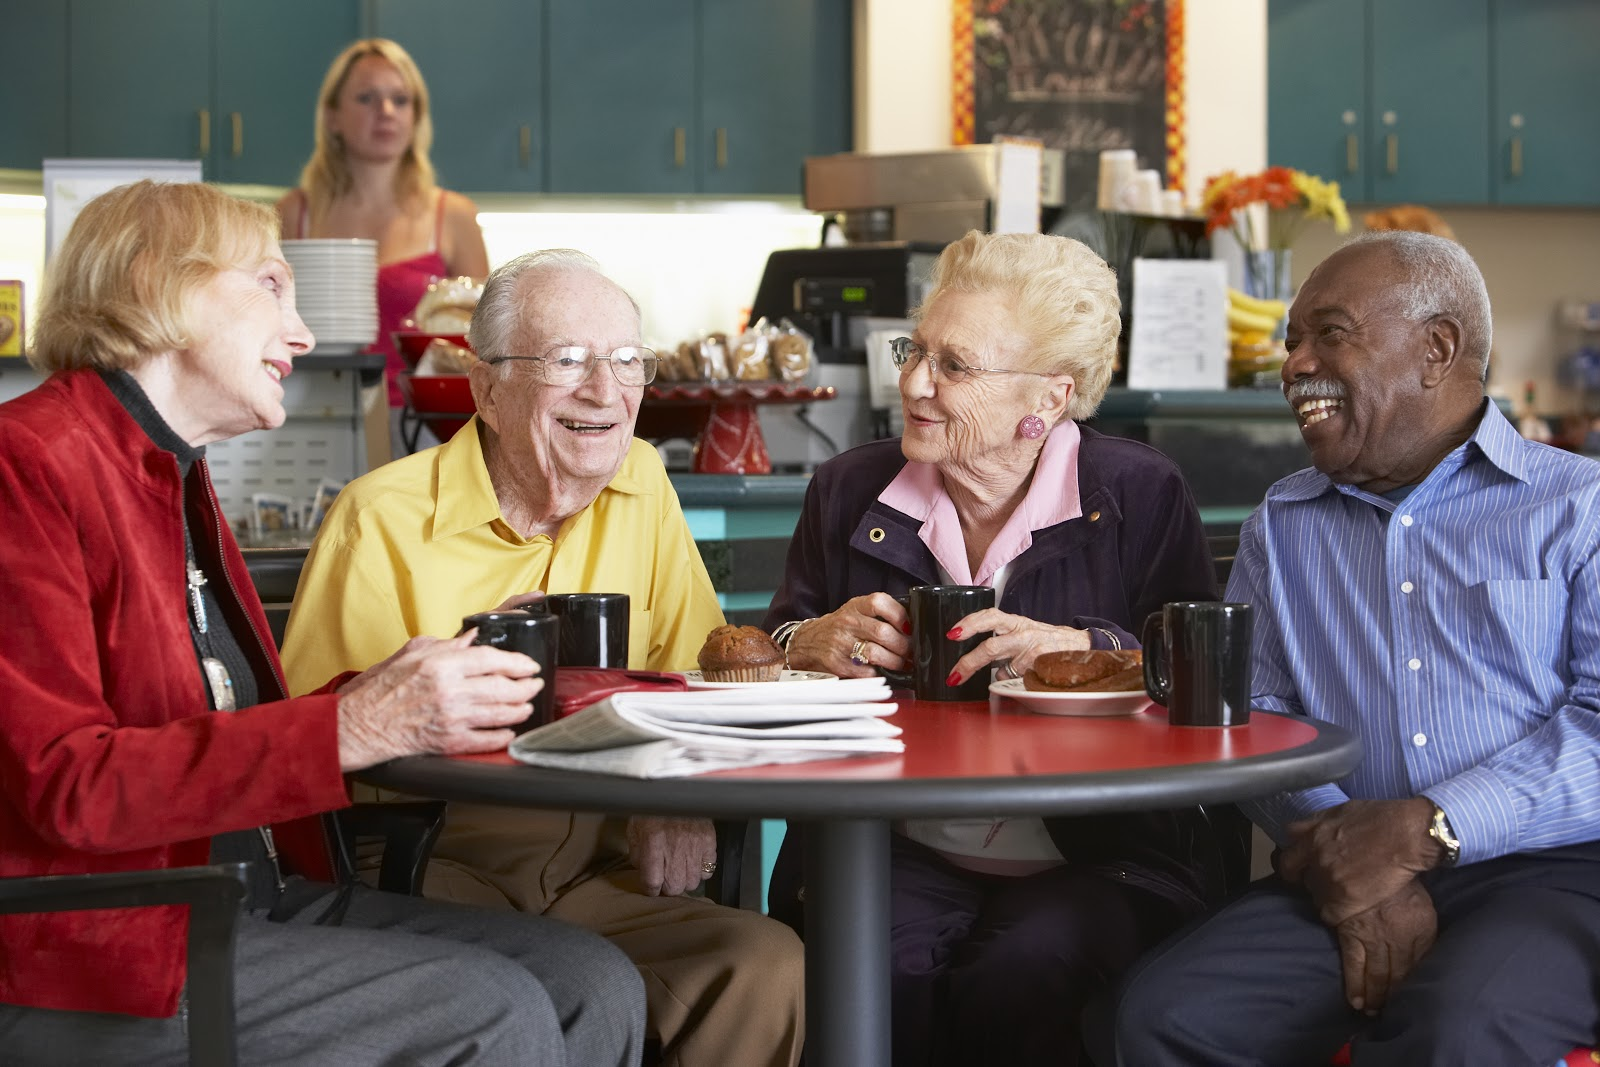 A group of elderly people enjoying a warm beverage